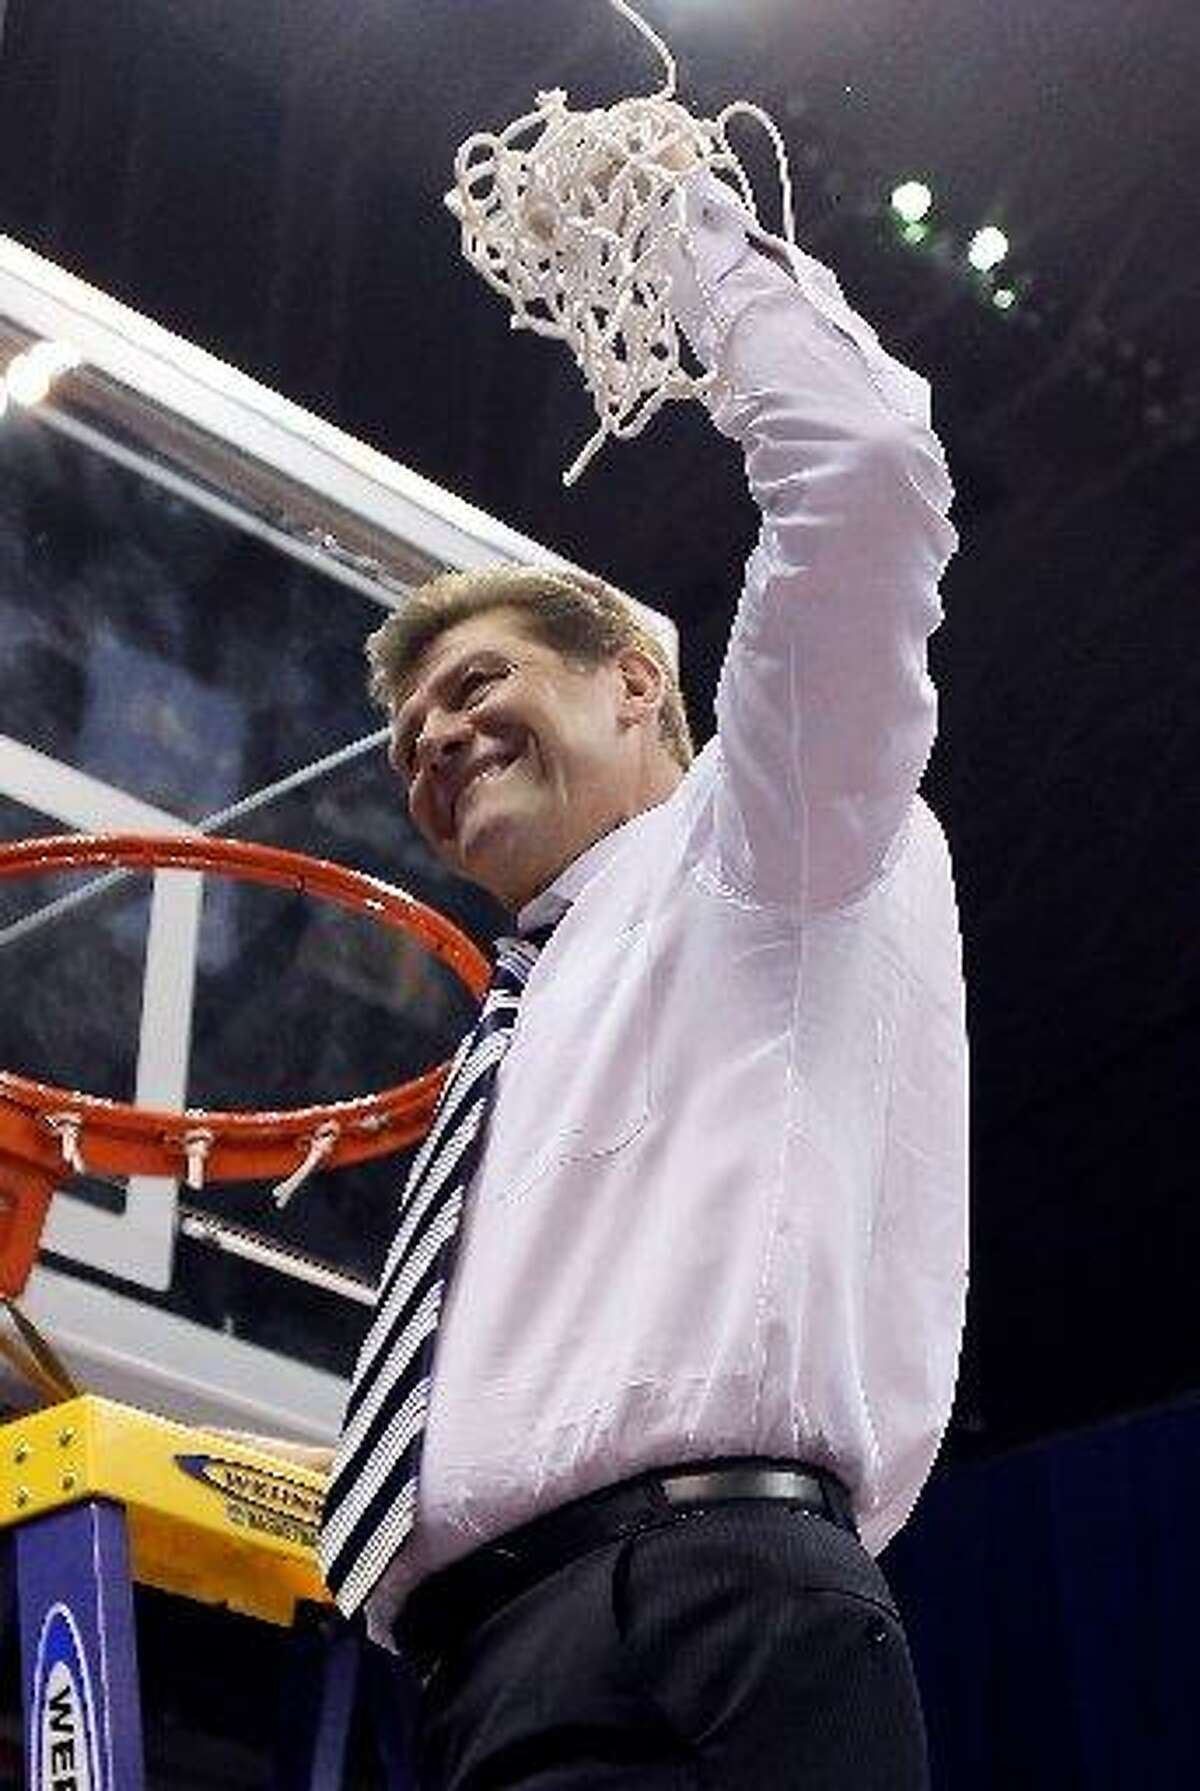 Connecticut Huskies head coach Geno Auriemma celebrates his teams 53-47 win over the Stanford Cardinal by cutting down the net following the the NCAA Women's Final Four Championship game at the Alamodome on April 6, 2010 in San Antonio, Texas.